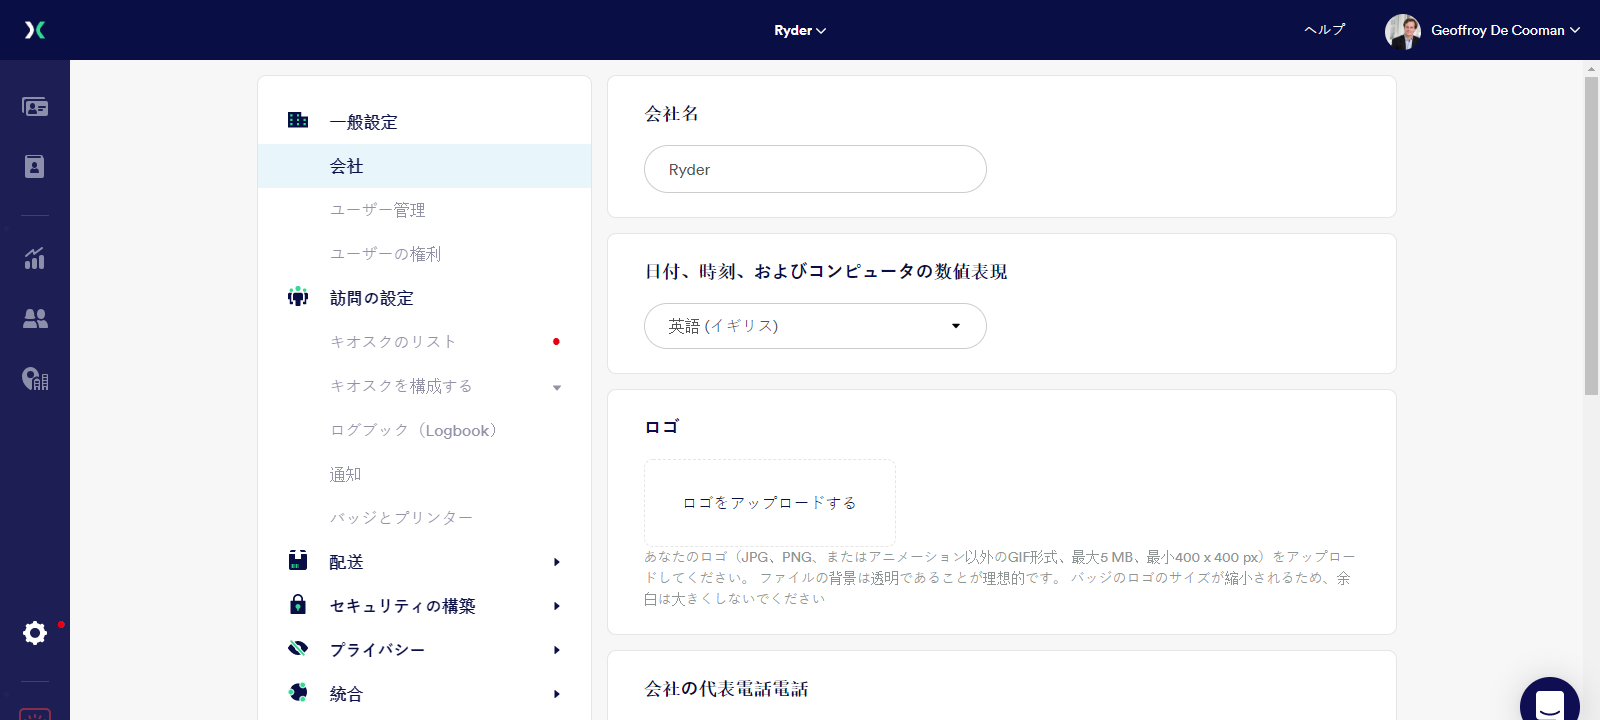 7.3 japanese dashboard (1)